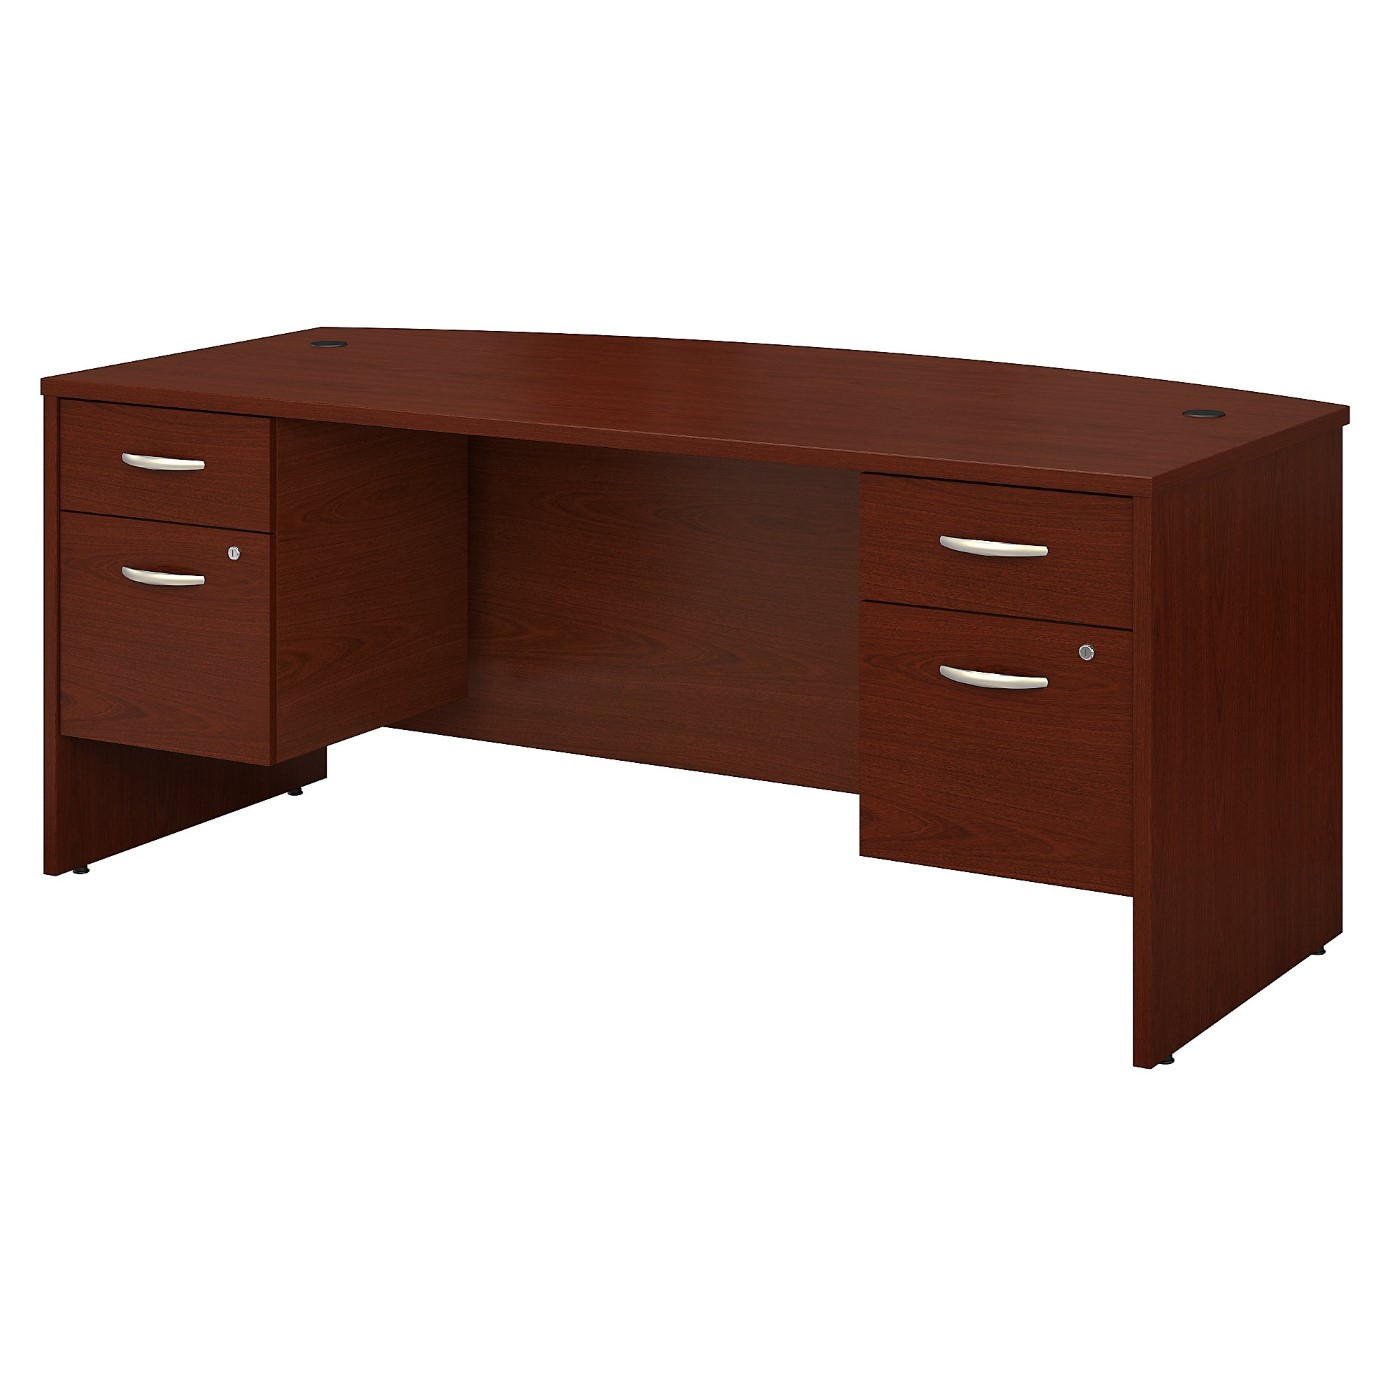 BUSH BUSINESS FURNITURE SERIES C 72W X 36D BOW FRONT DESK WITH 3/4 PEDESTALS. FREE SHIPPING